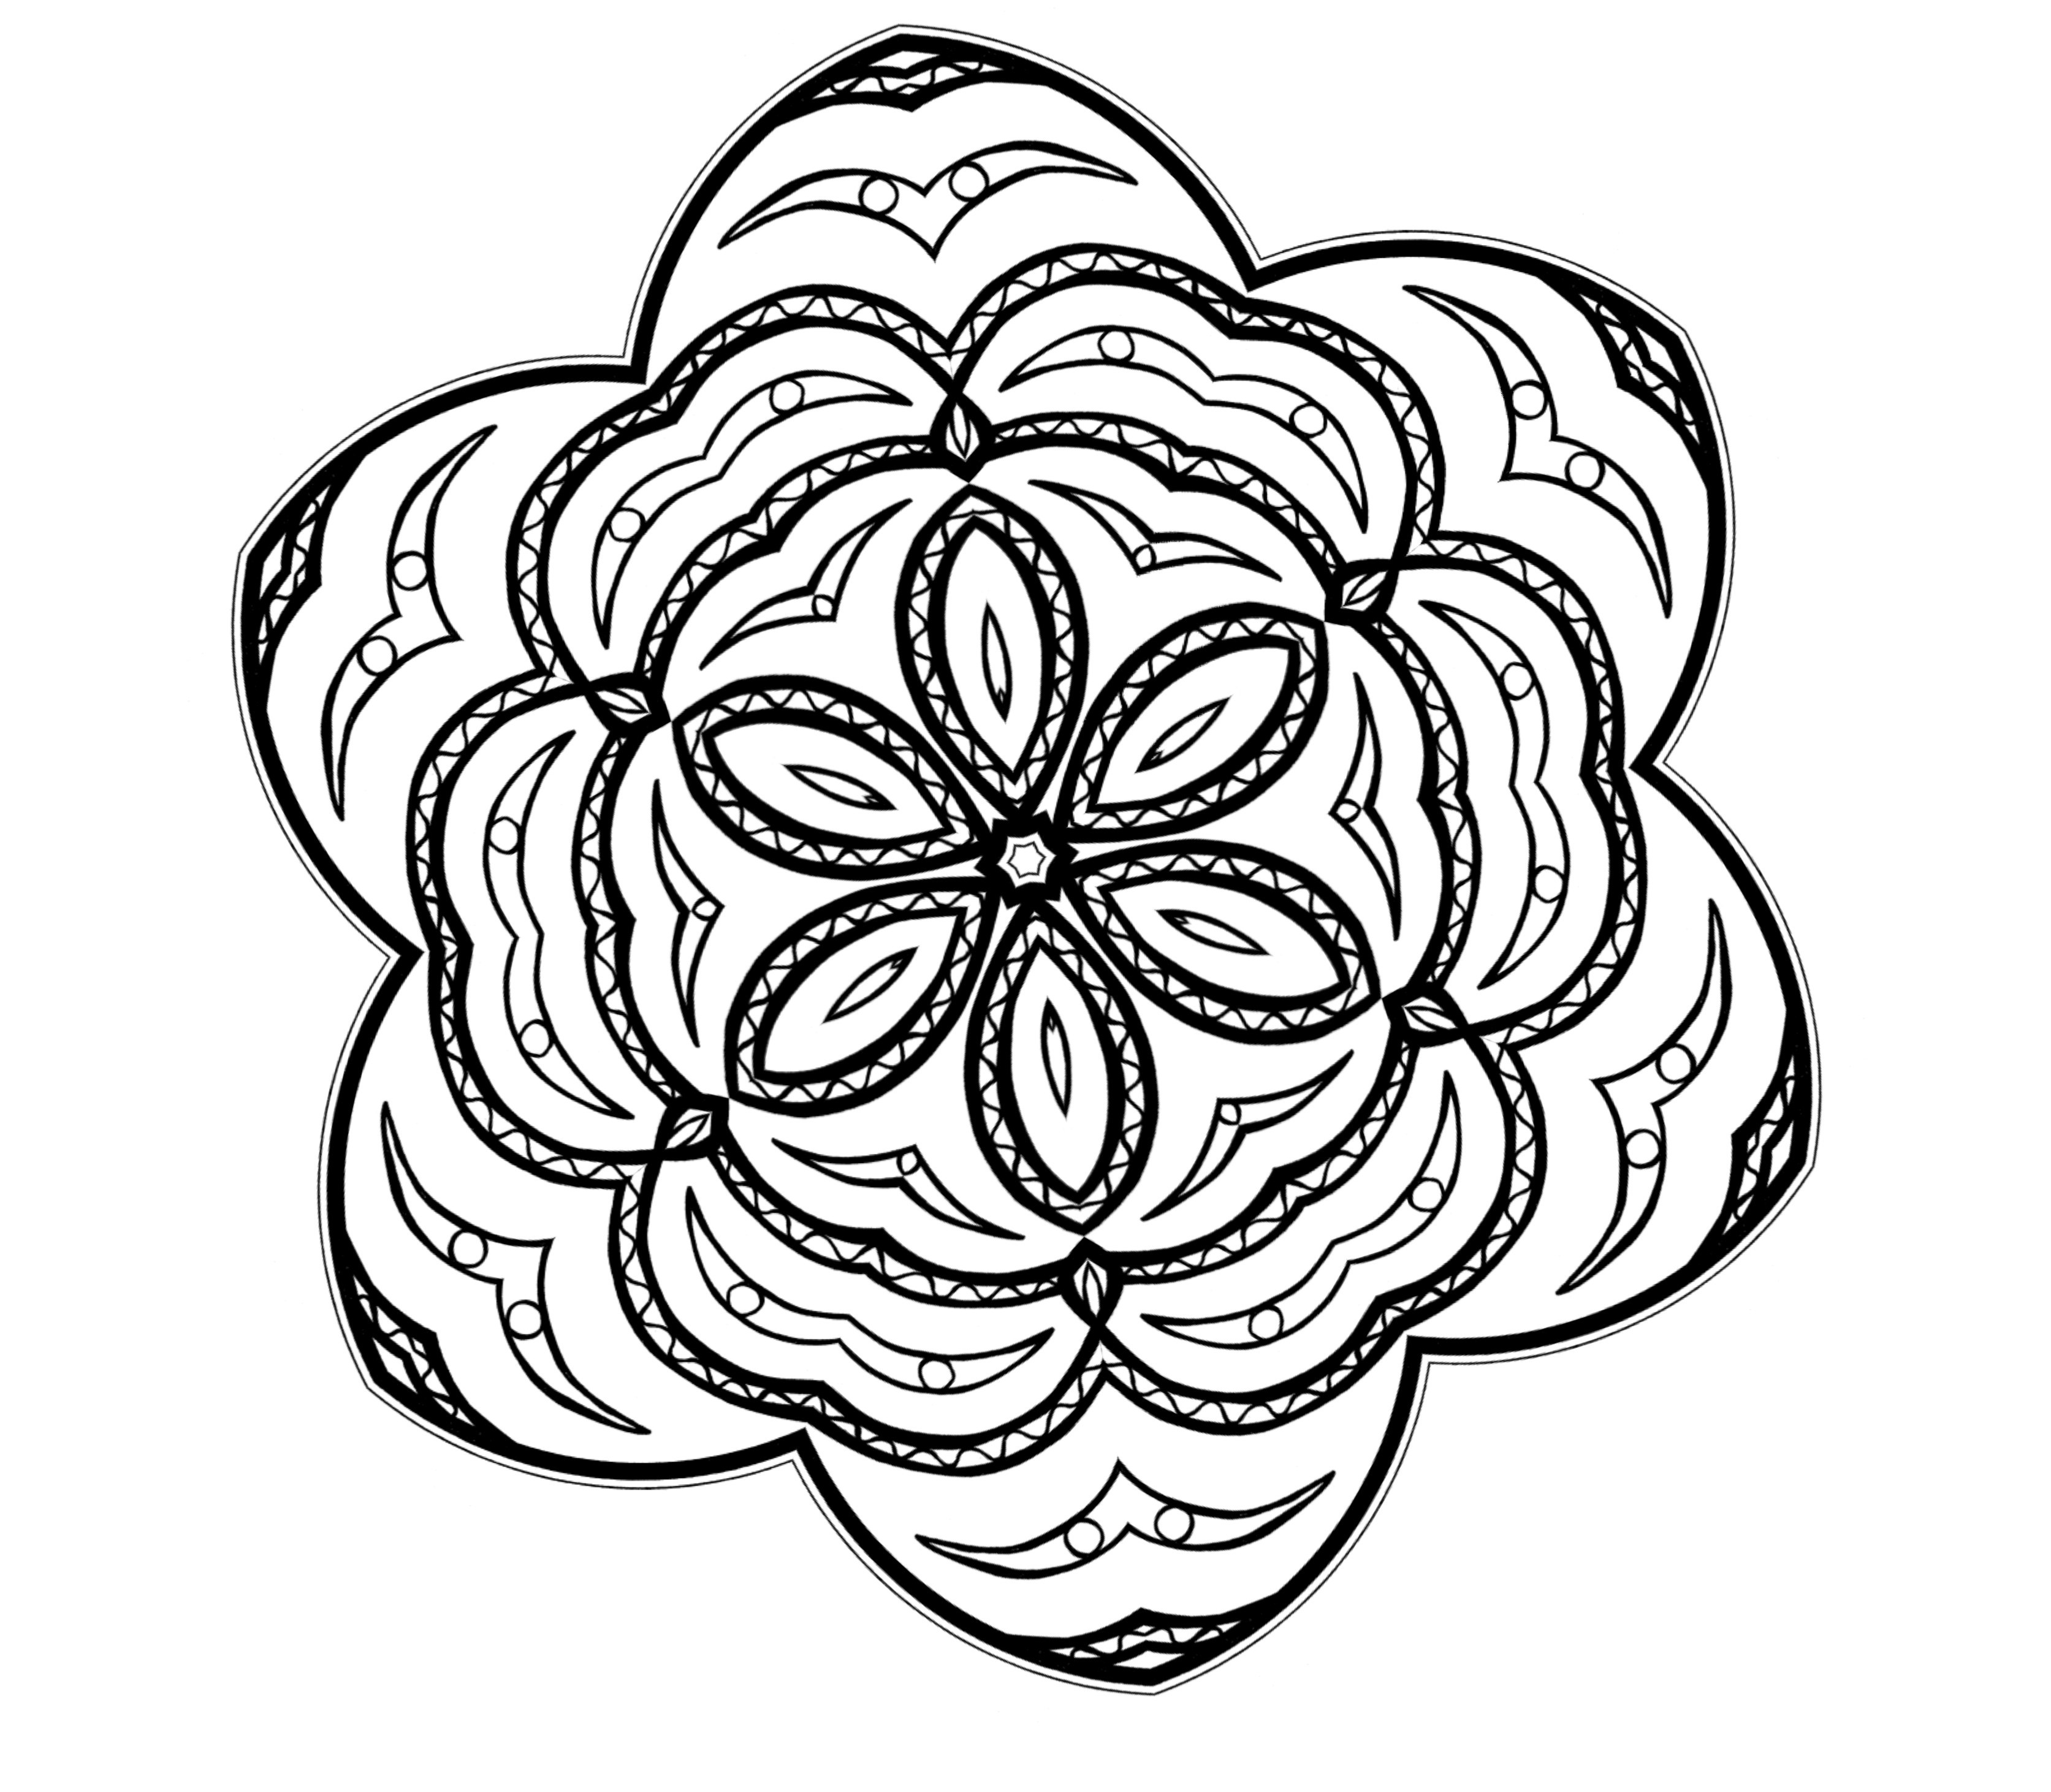 kids art coloring pages doodle art to download doodle art kids coloring pages pages kids art coloring